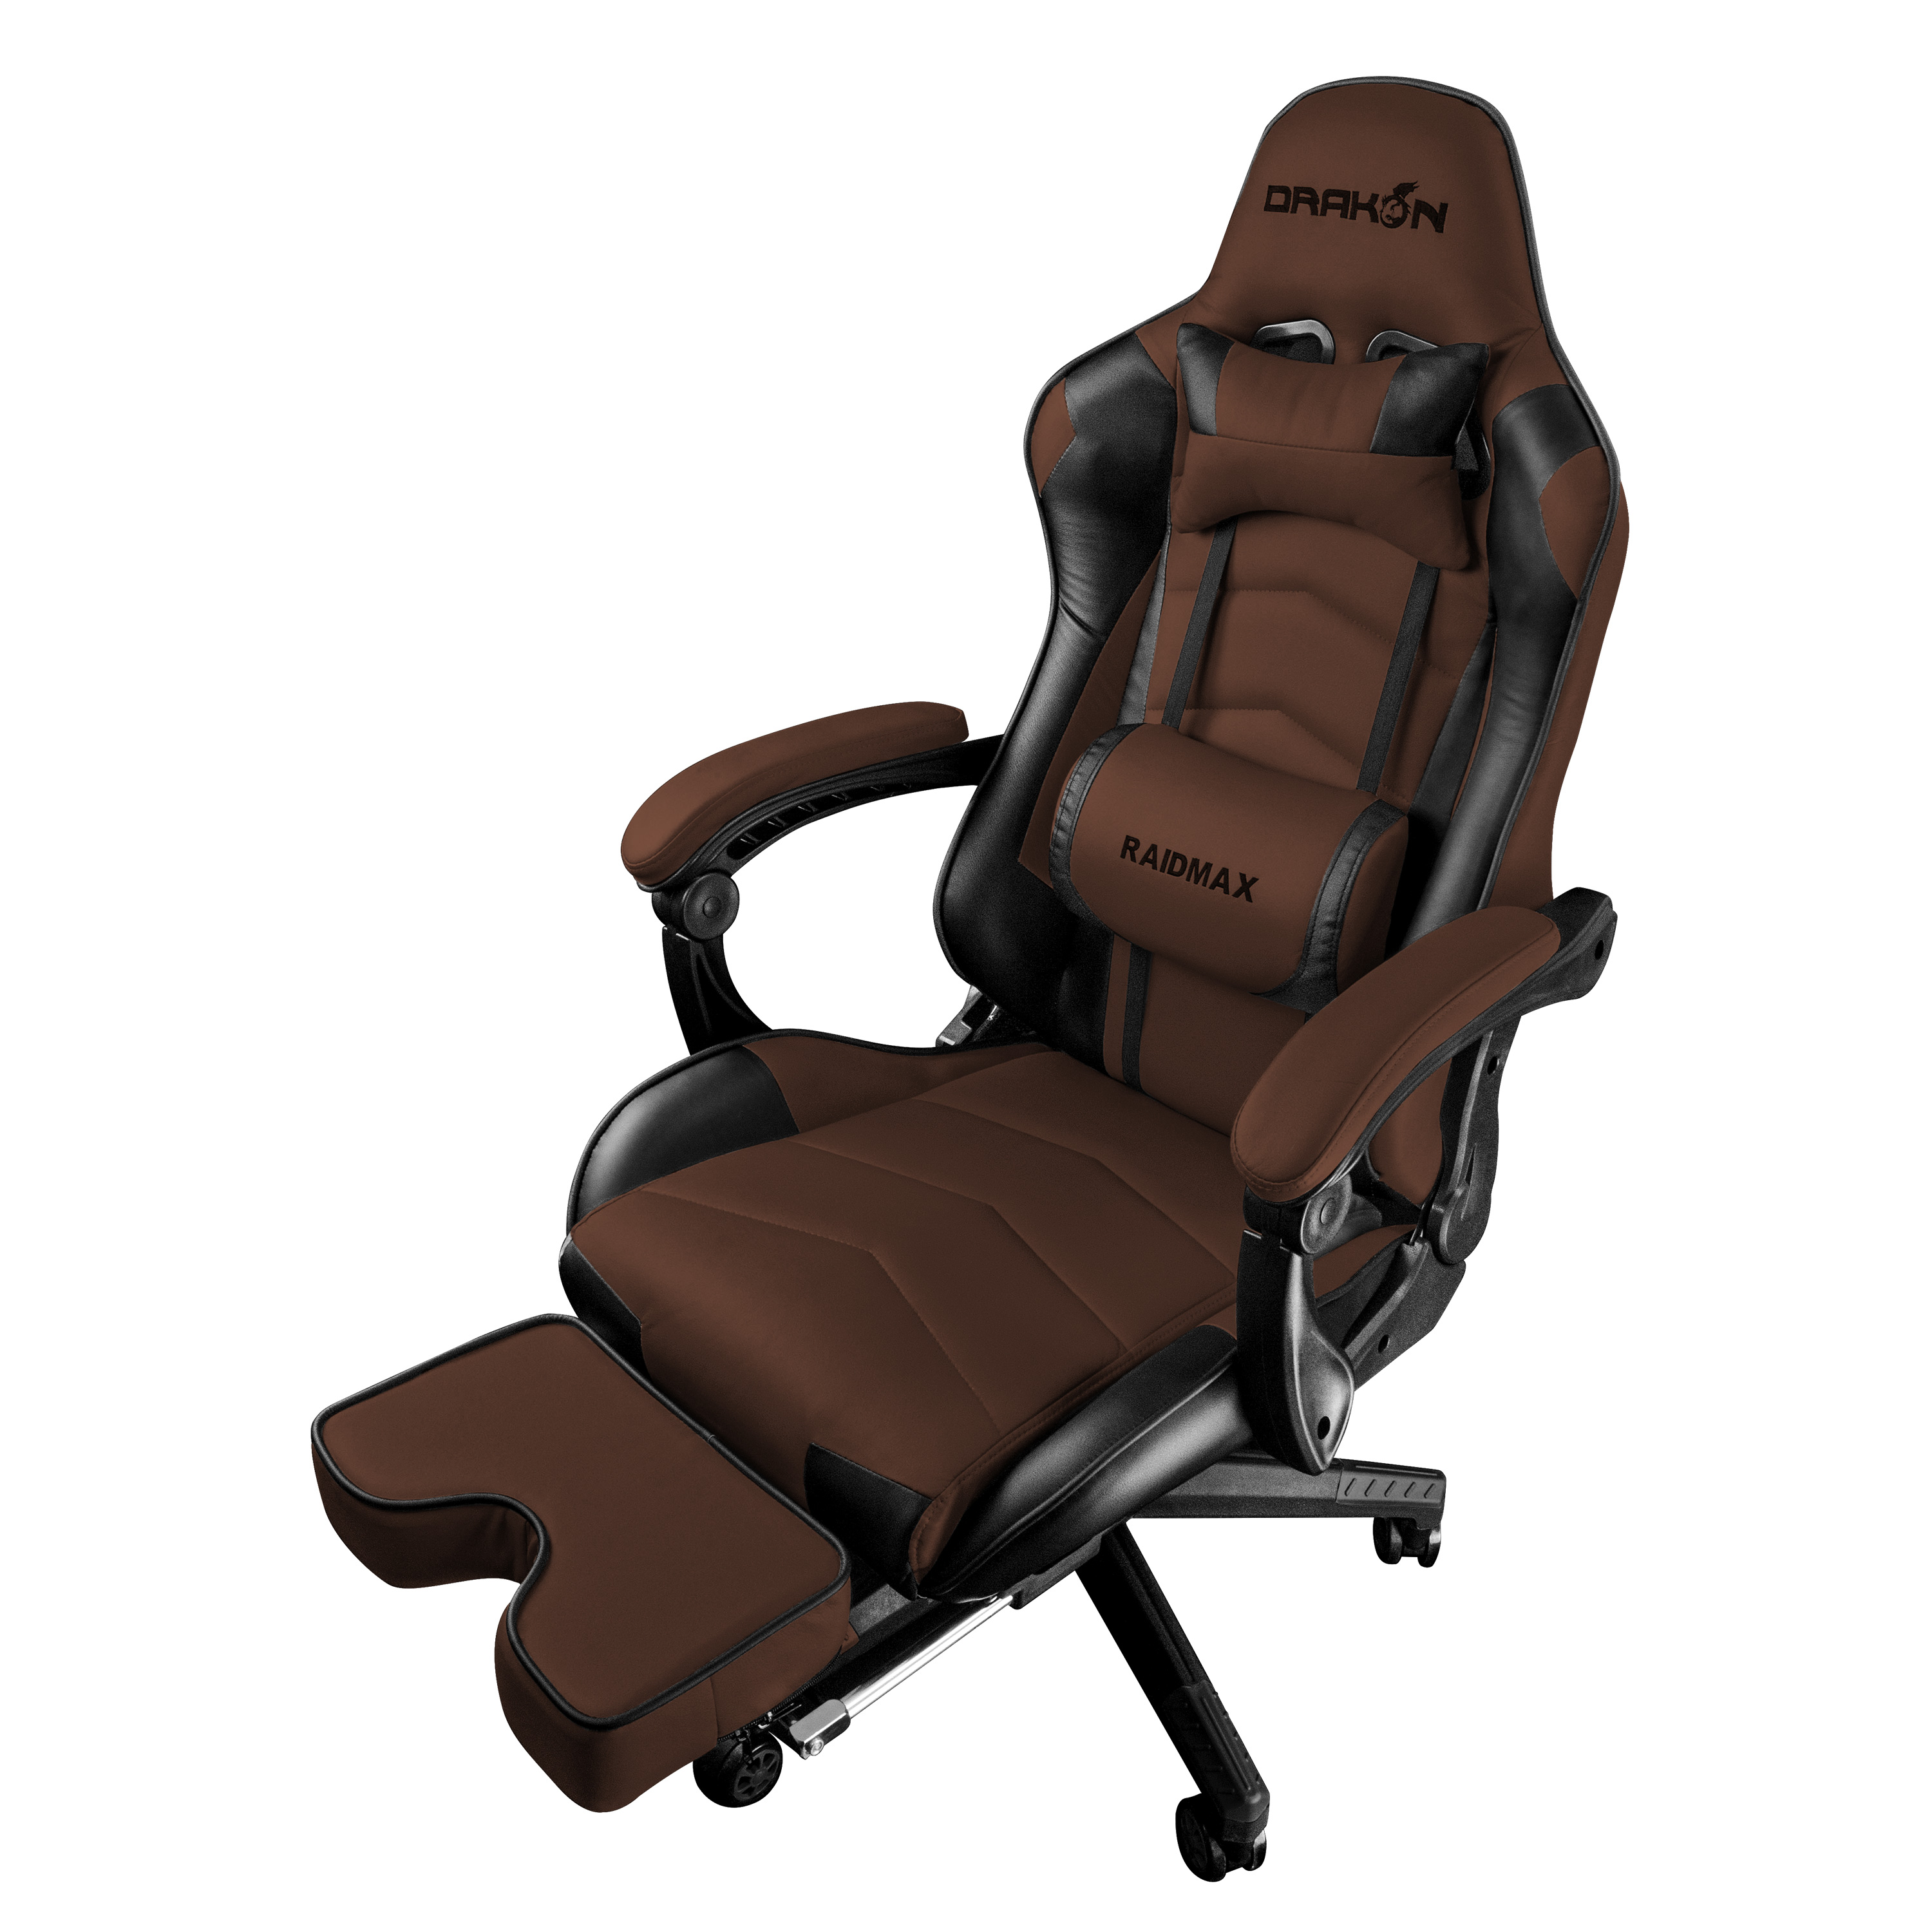 Picture of: Drakon Dk709 Gaming Chair Ergonomic Racing Style Pu Leather Seat Headrest With Foldable Foot Leg Rest Brown Walmart Com Walmart Com